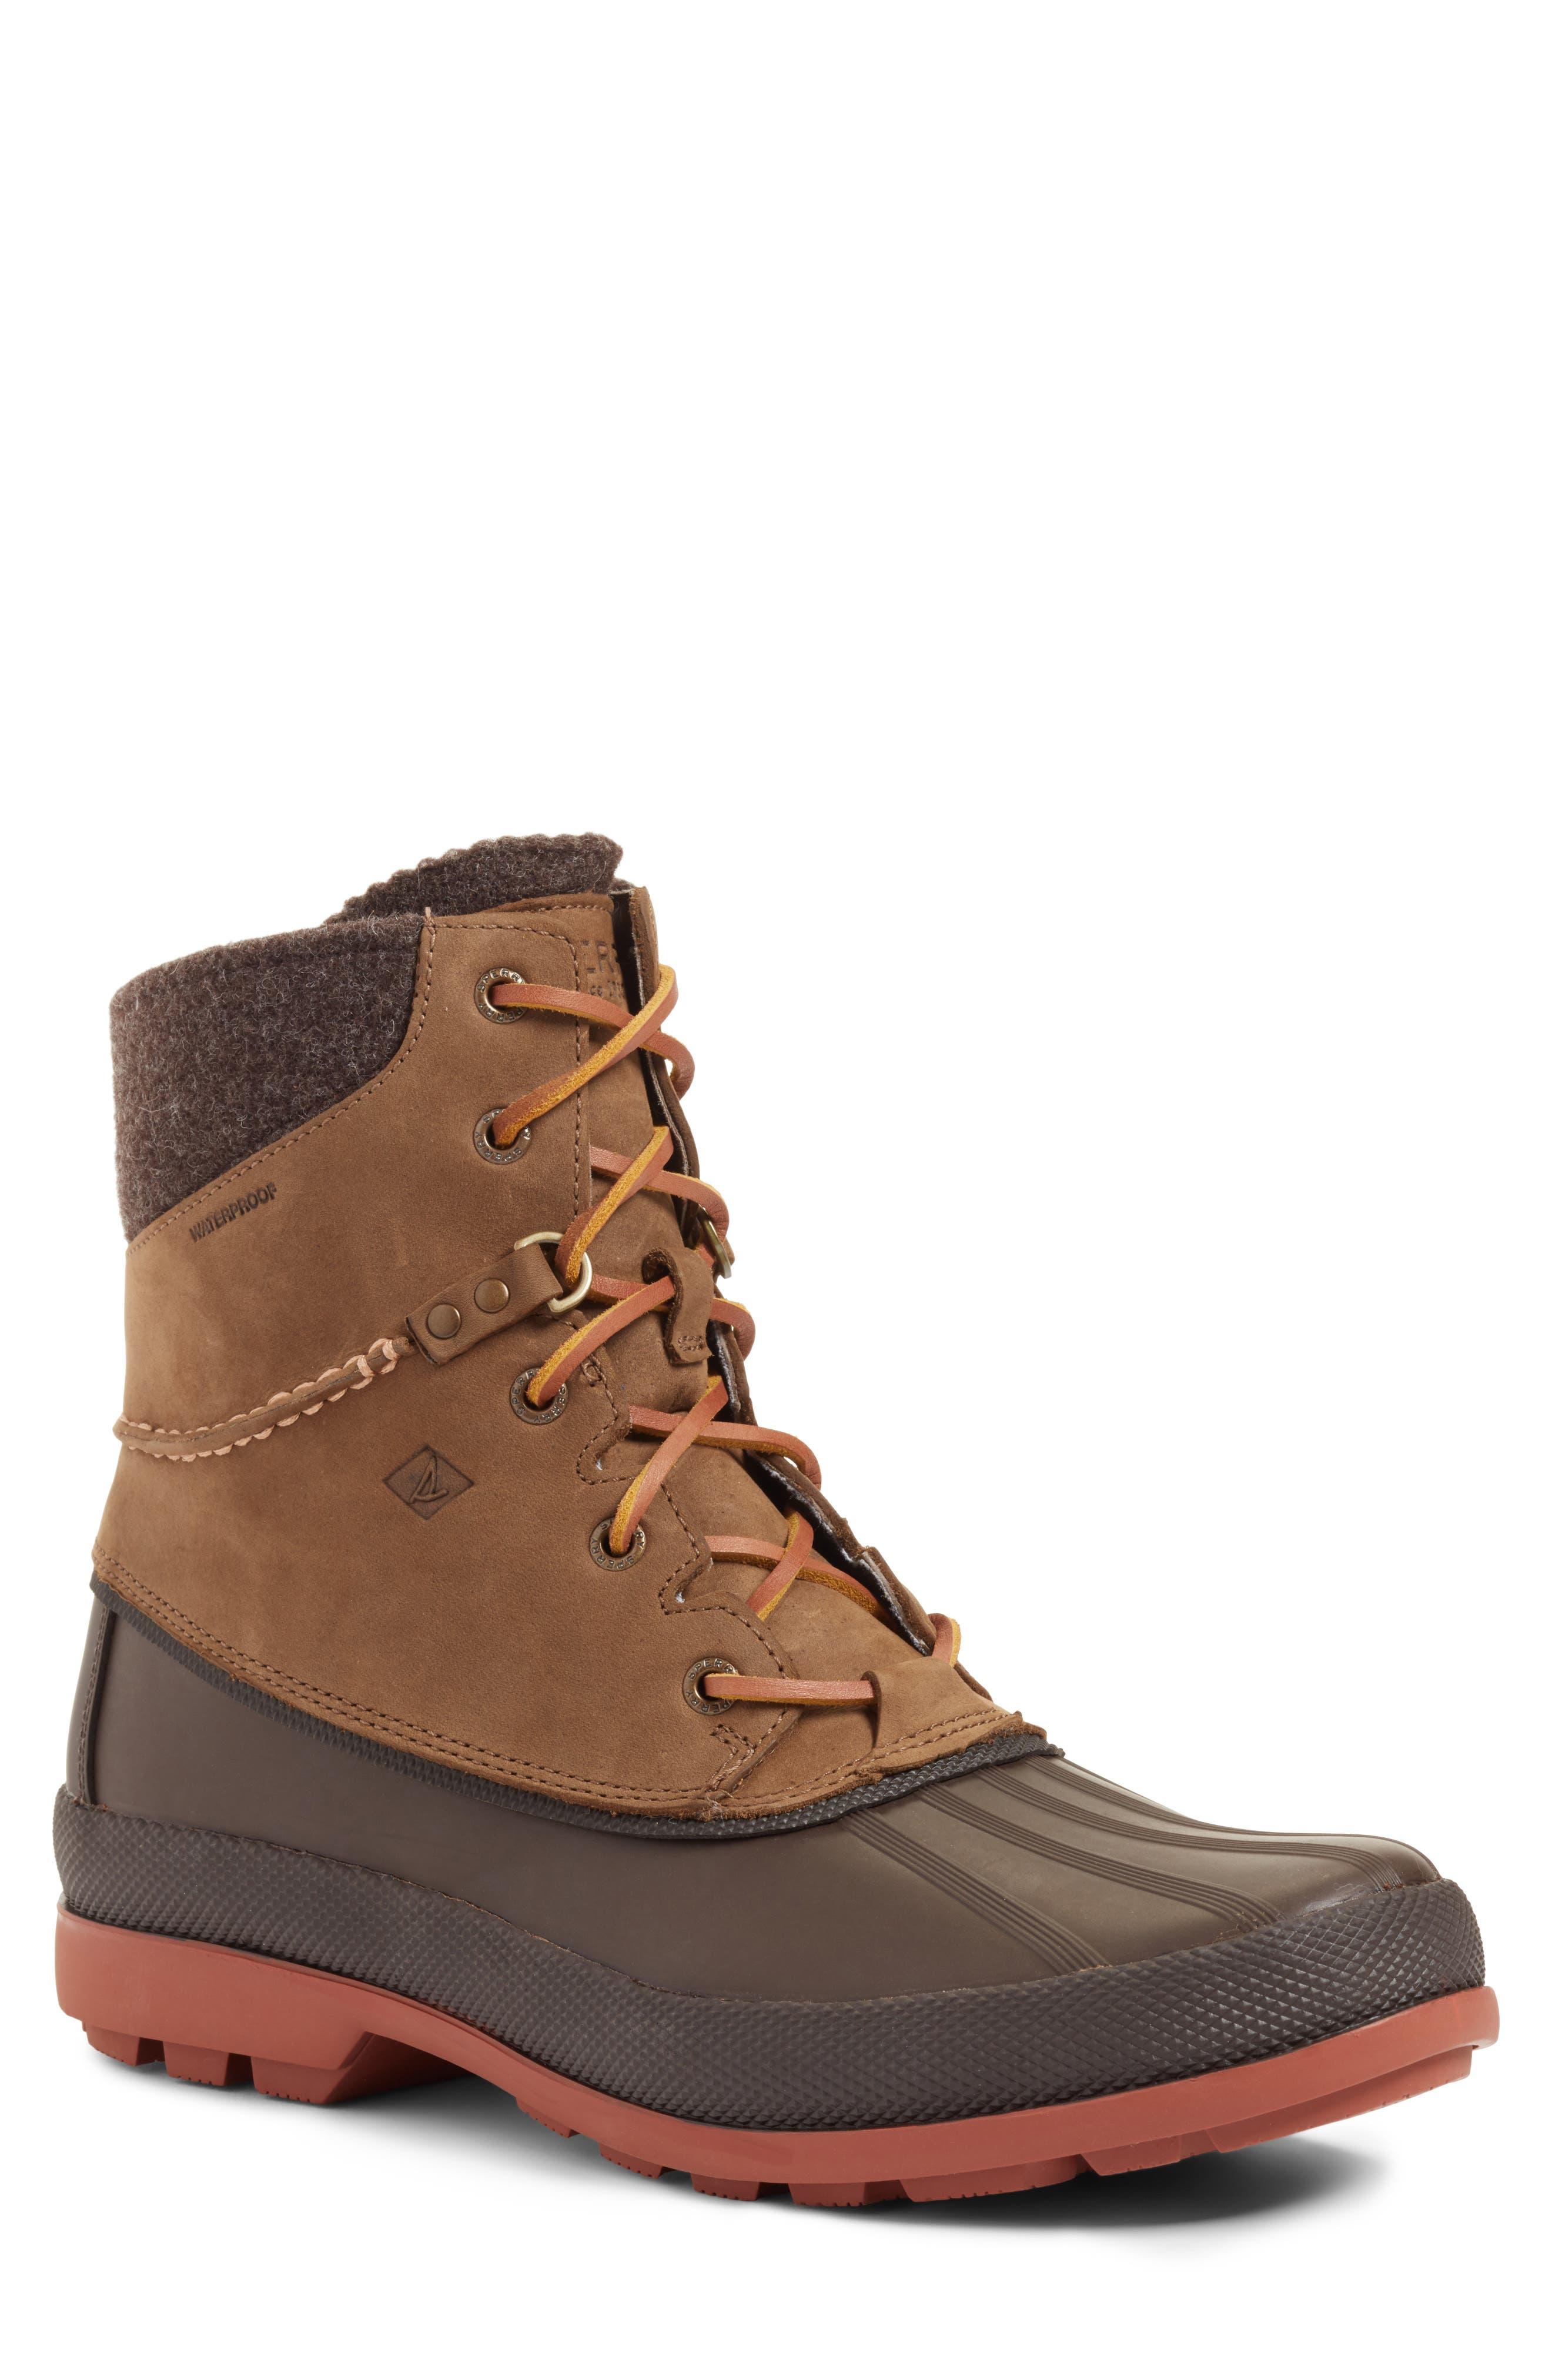 Alternate Image 1 Selected - Sperry Cold Bay Duck Boot (Men)